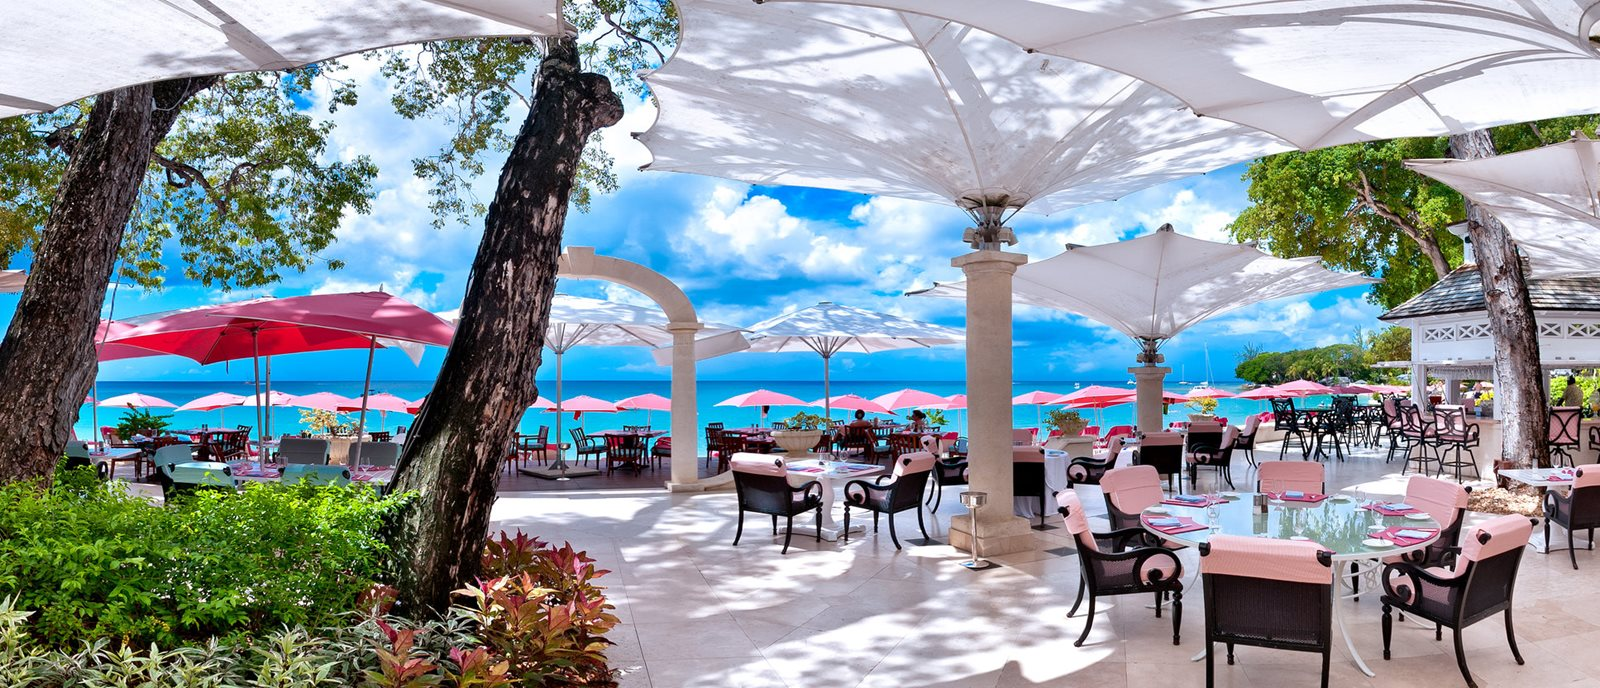 Outdoor Dining at Bajan Blue Restaurant Barbados